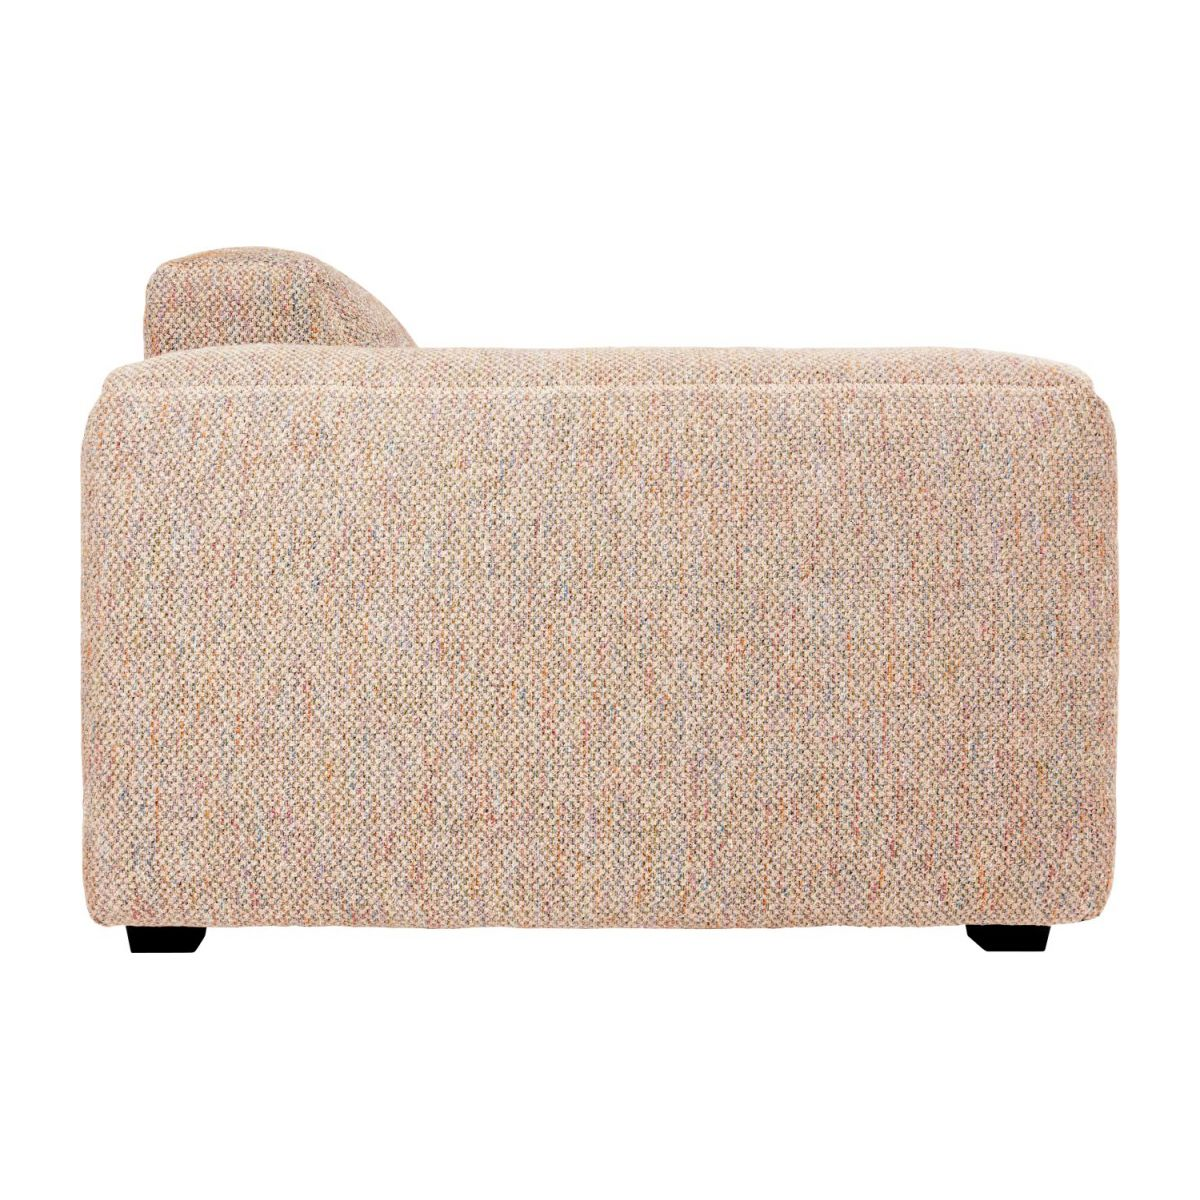 2-seater sofa in Bellagio fabric, passion orange n°6